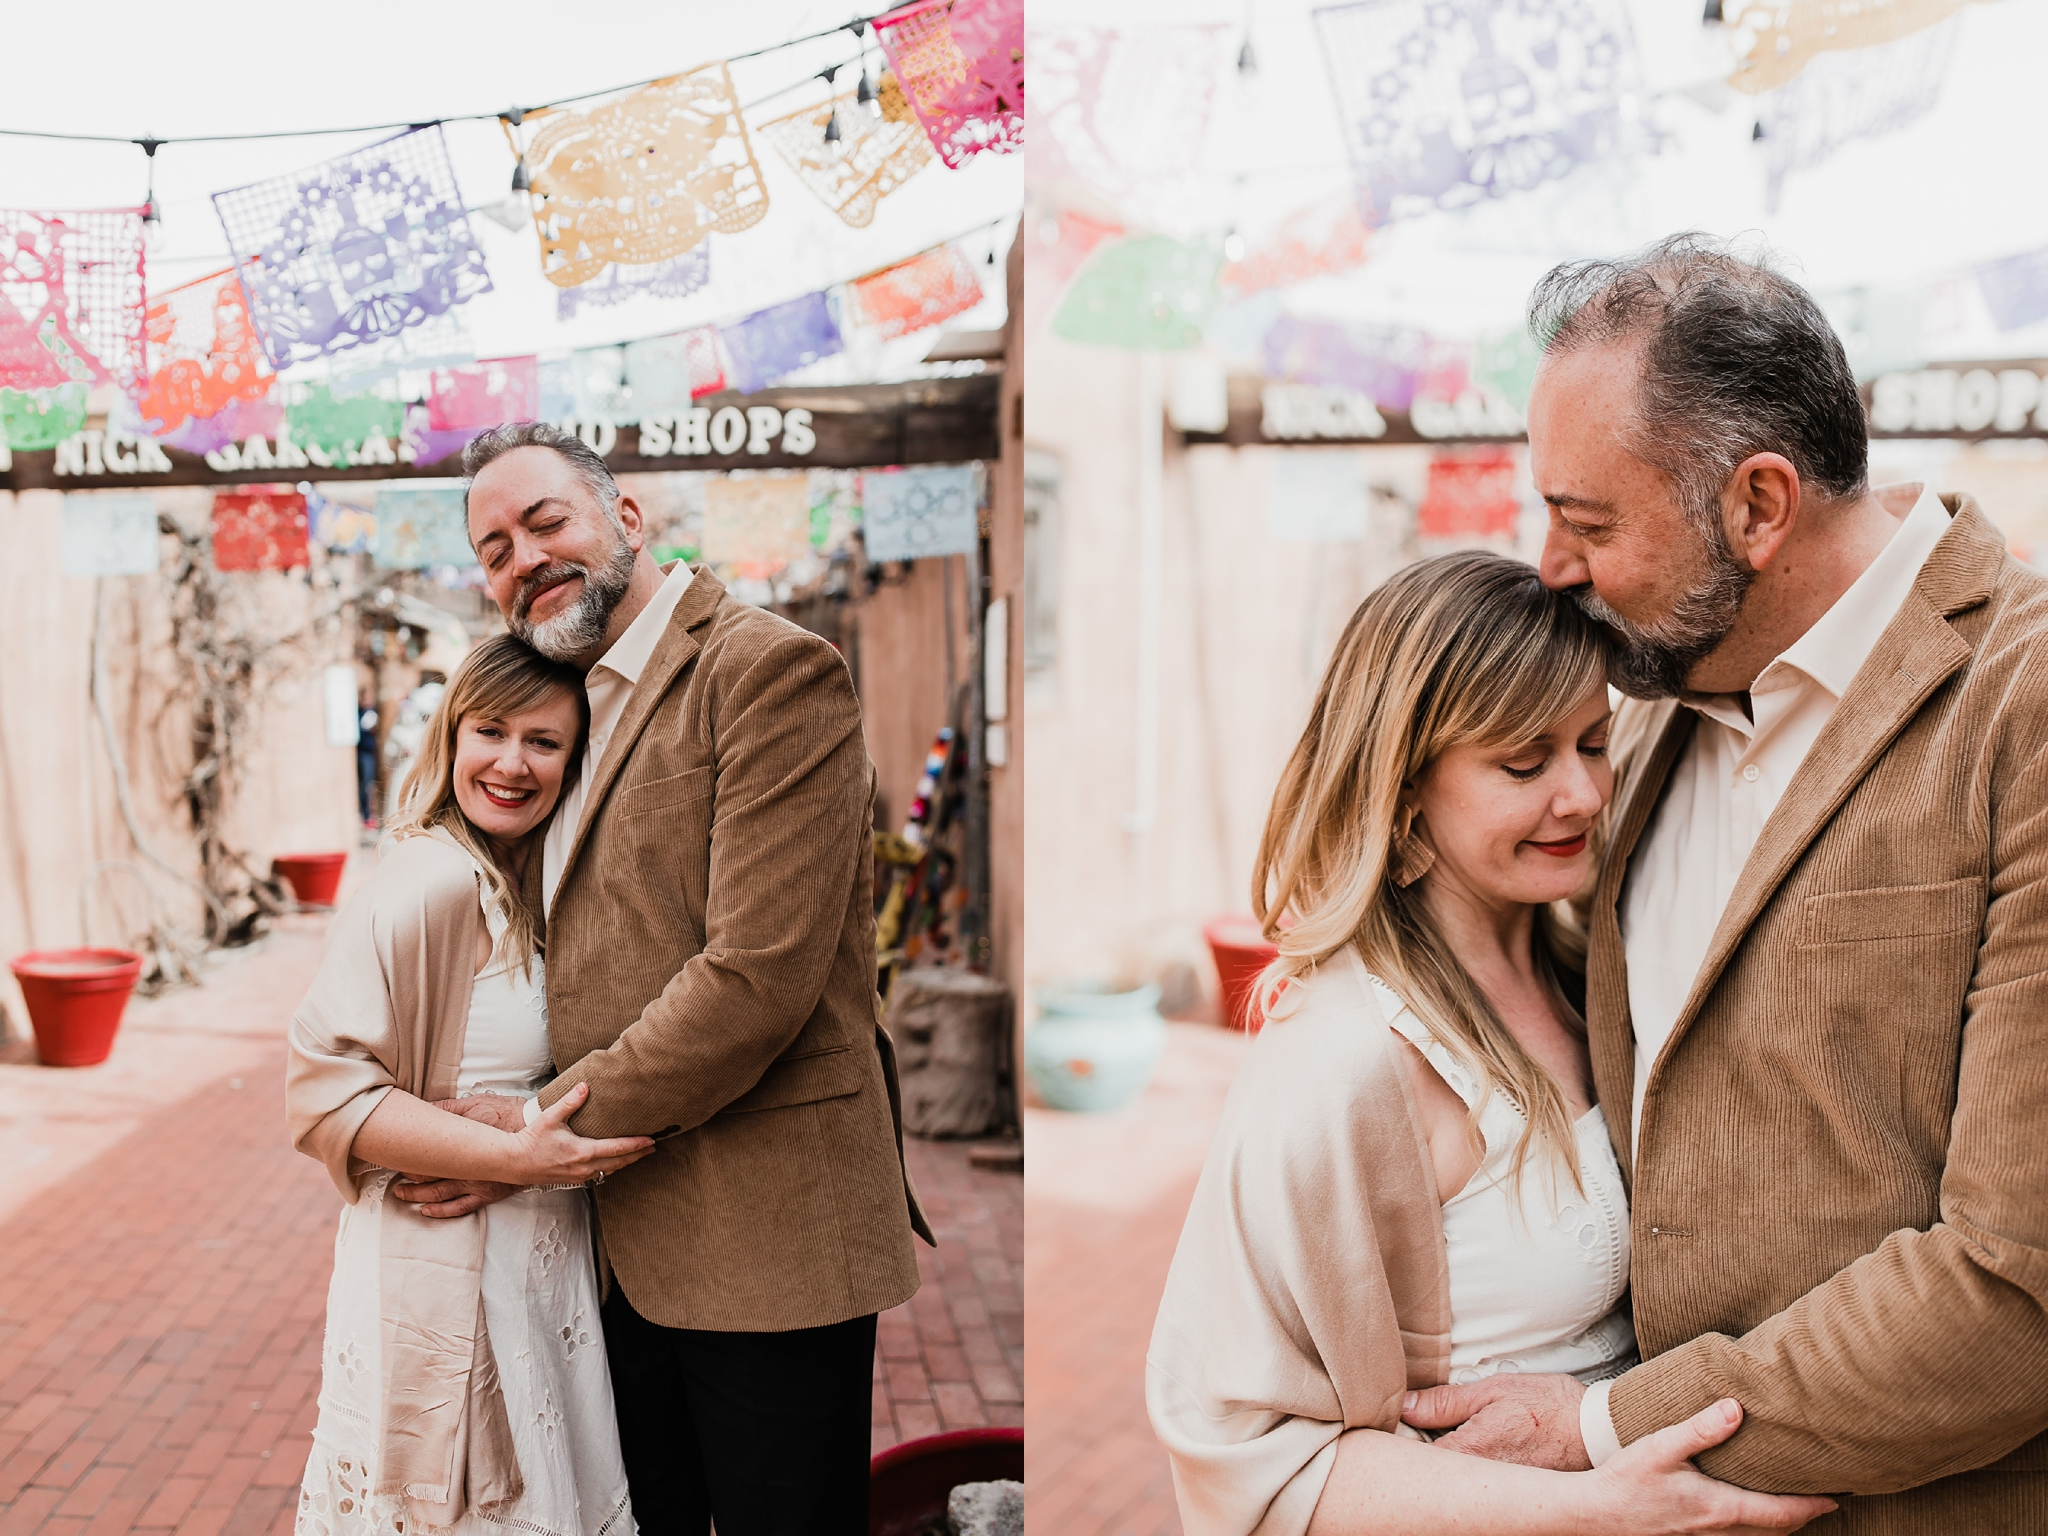 Alicia+lucia+photography+-+albuquerque+wedding+photographer+-+santa+fe+wedding+photography+-+new+mexico+wedding+photographer+-+new+mexico+engagement+-+albuquerque+engagement+-+old+town+engagement_0005.jpg